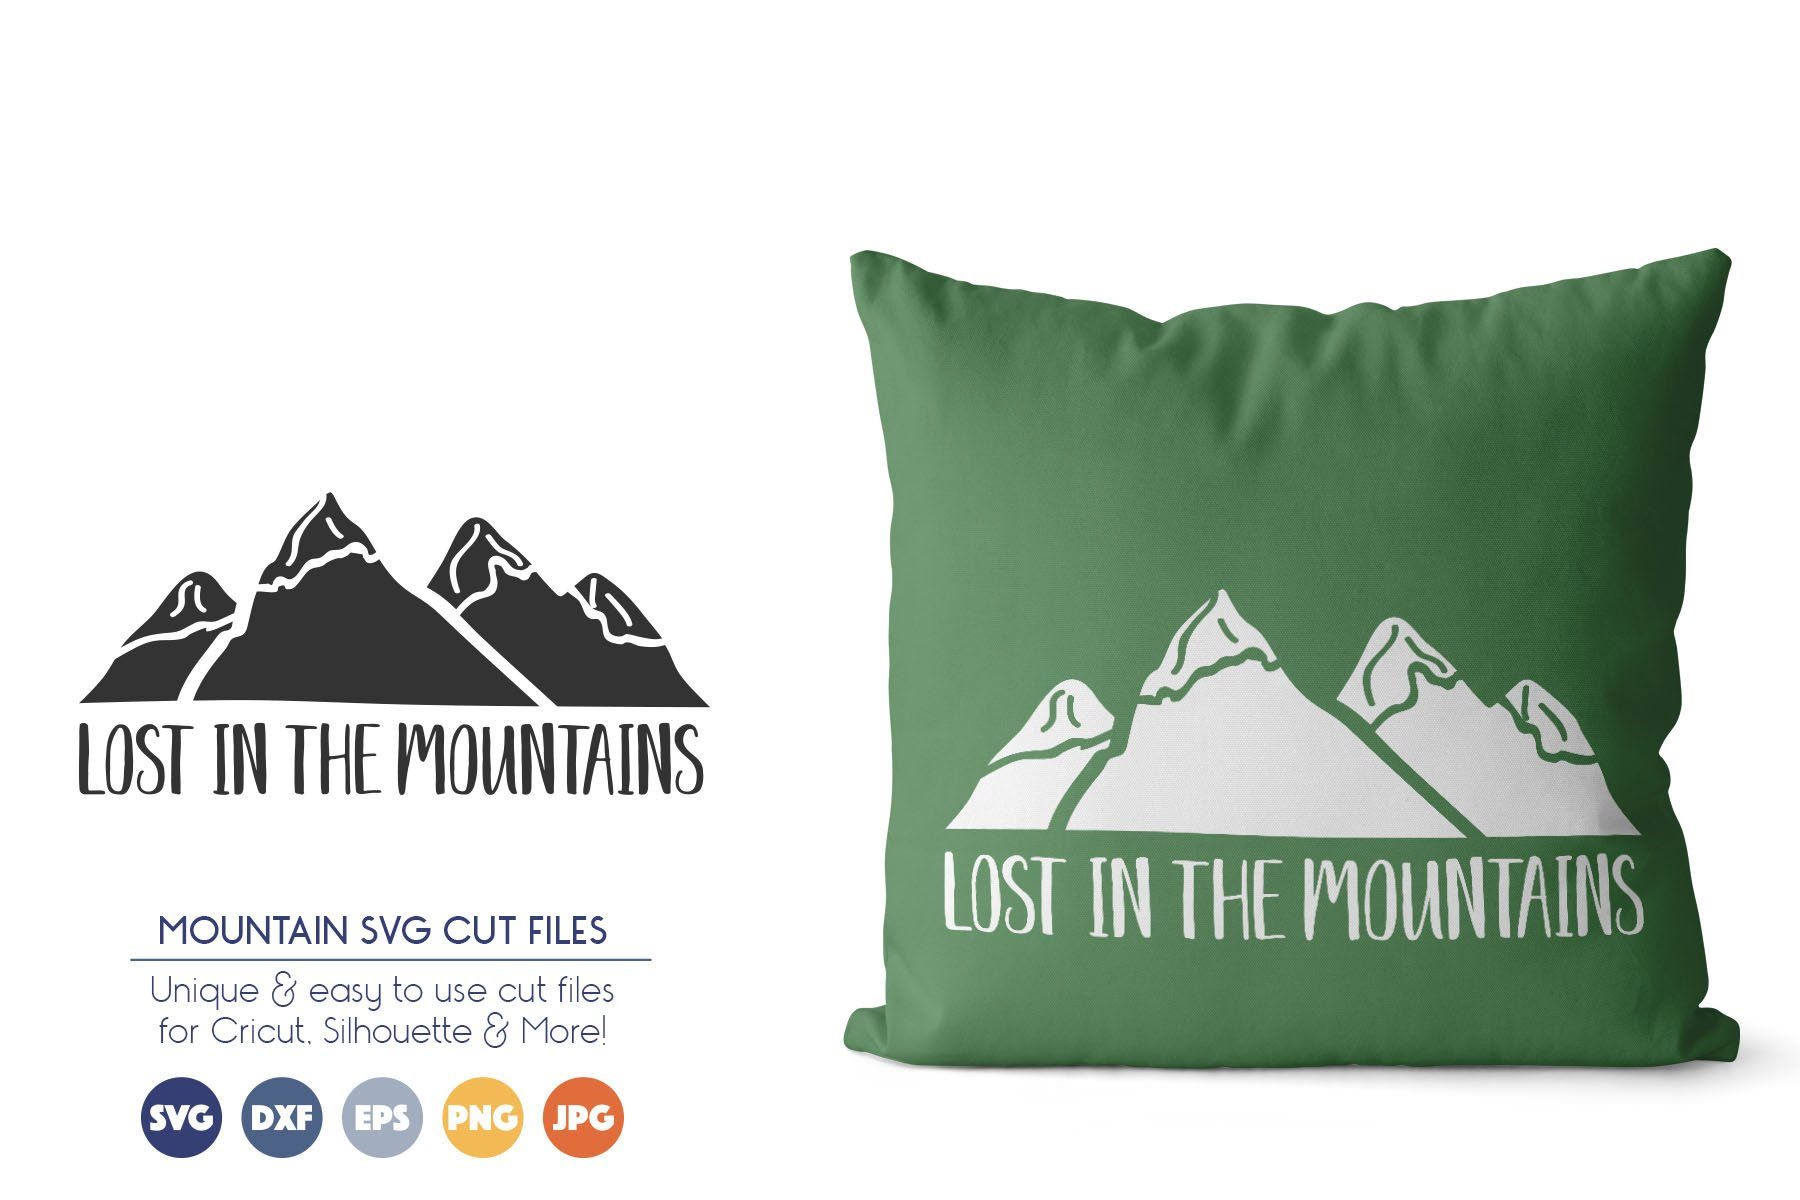 Wanderlust, Adventure, Mountain SVG Files example image 1